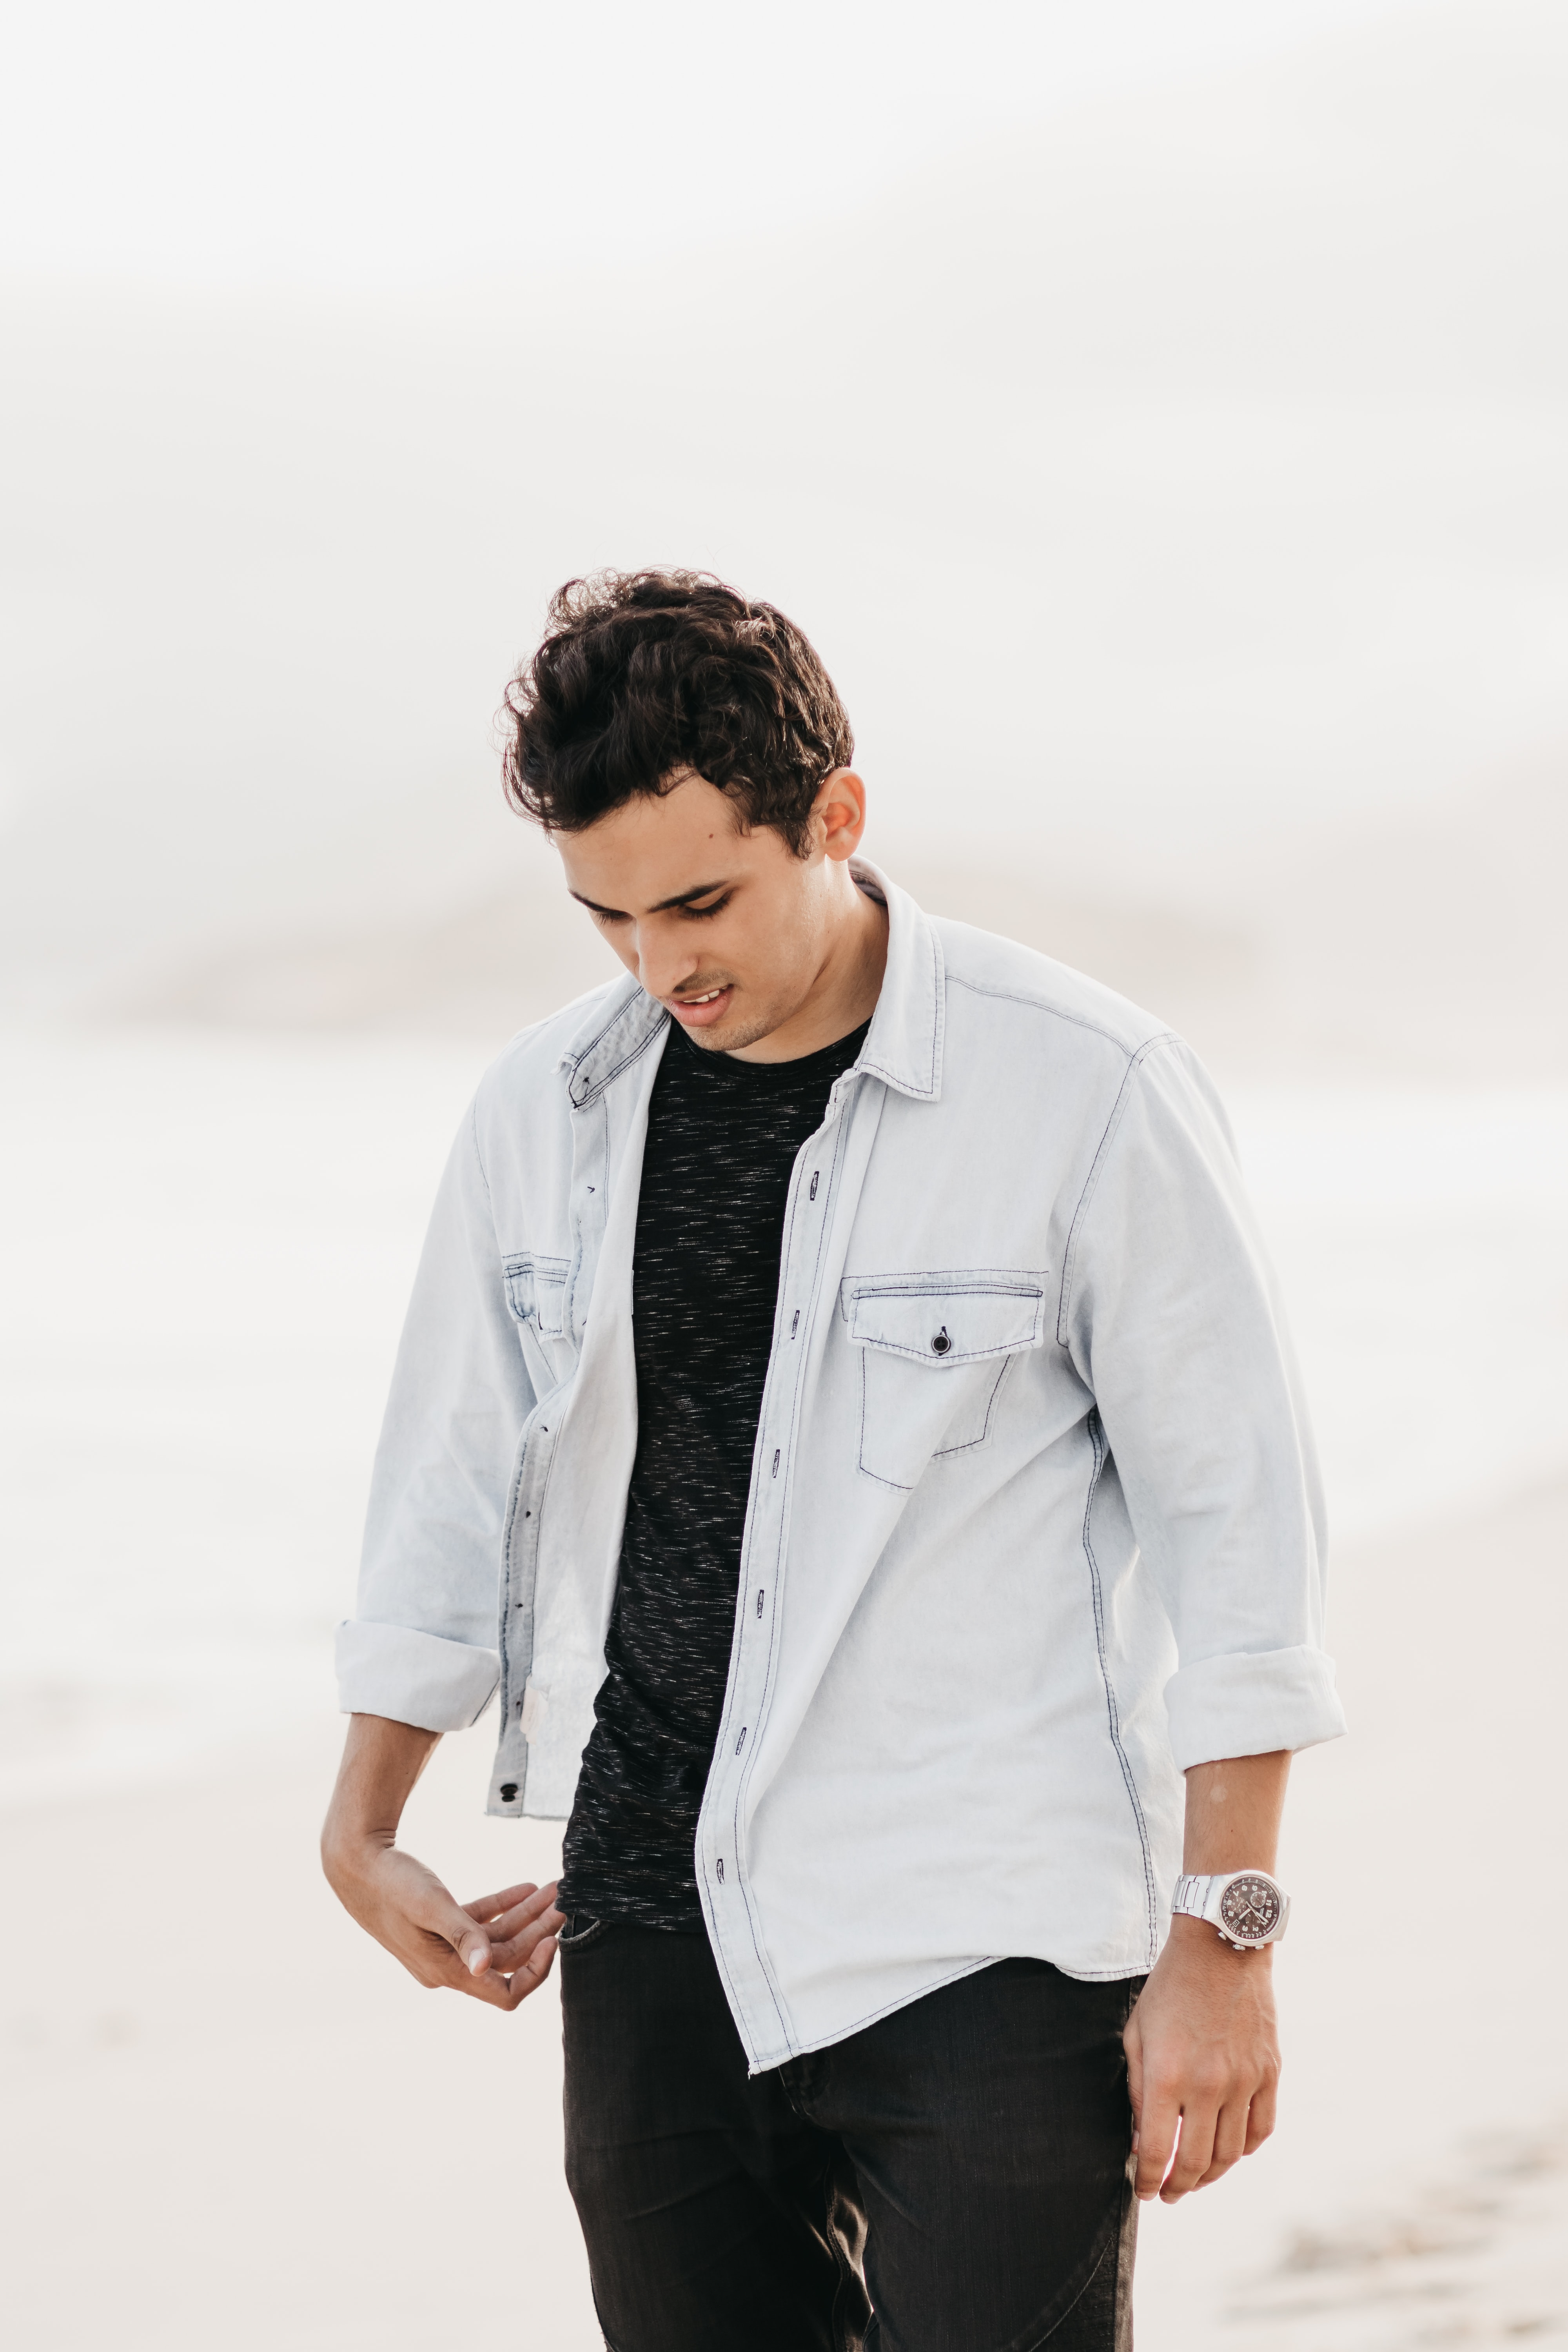 man in white button-up jacket standing in beach